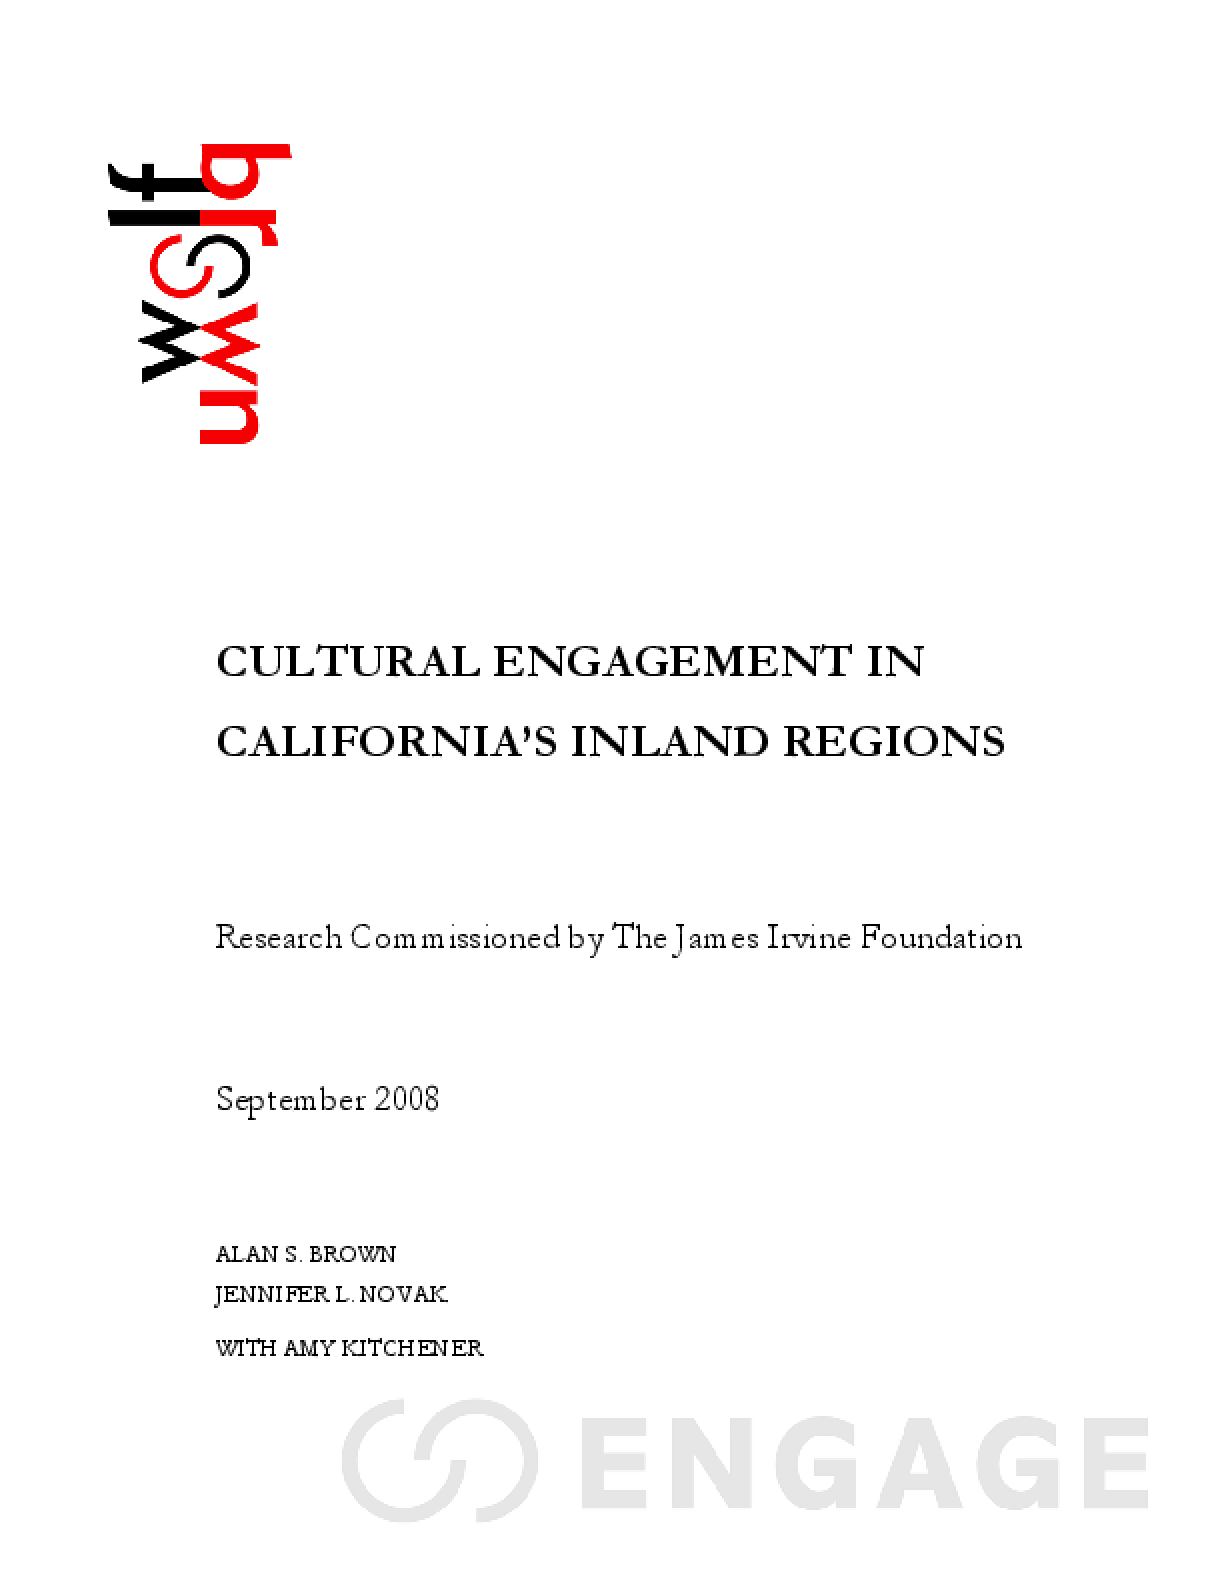 Cultural Engagement in California's Inland Regions